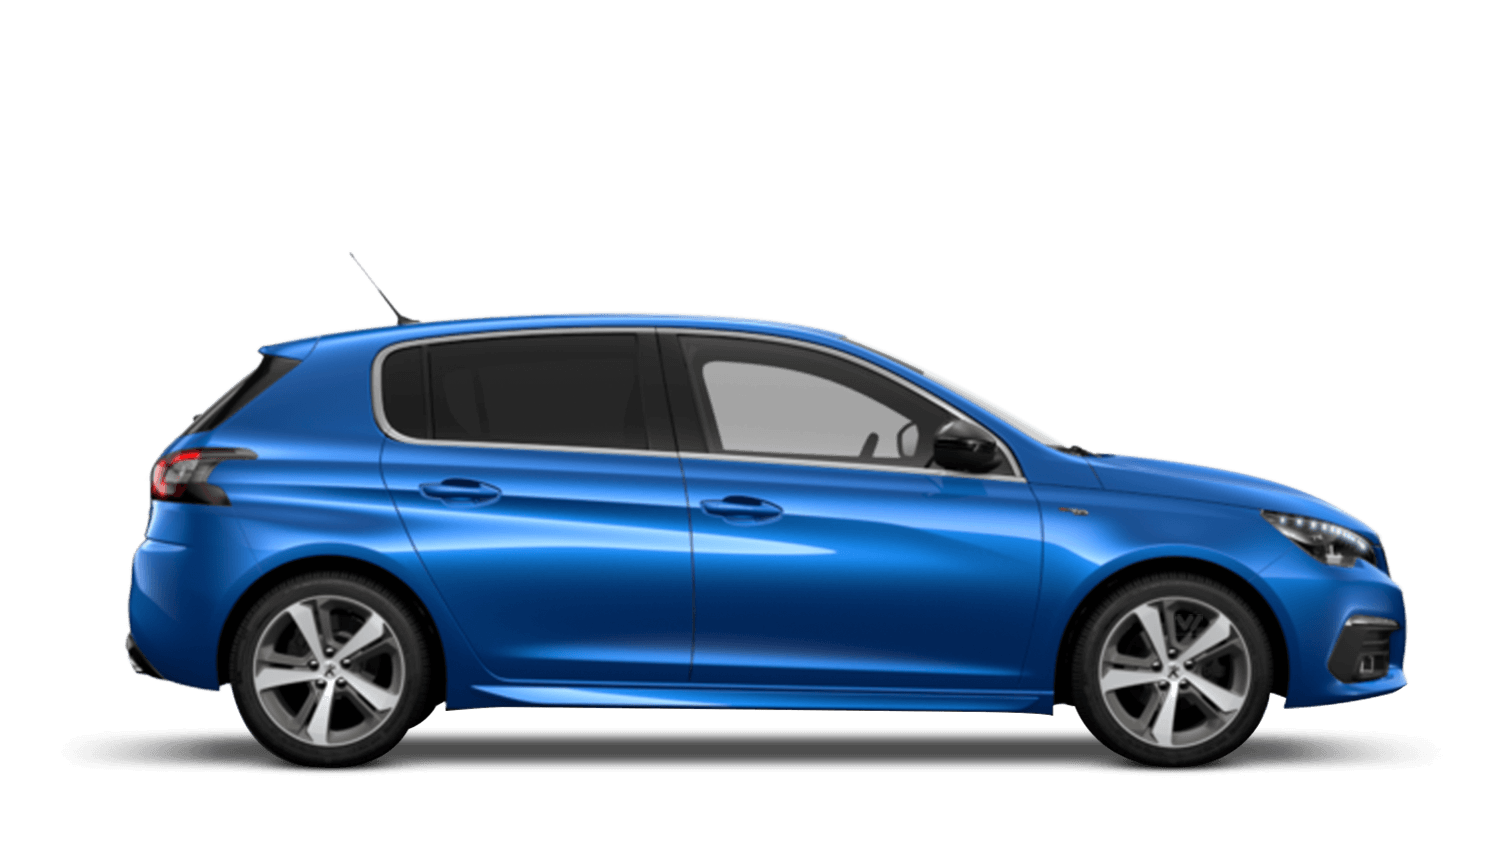 Vertigo Blue New Peugeot 308